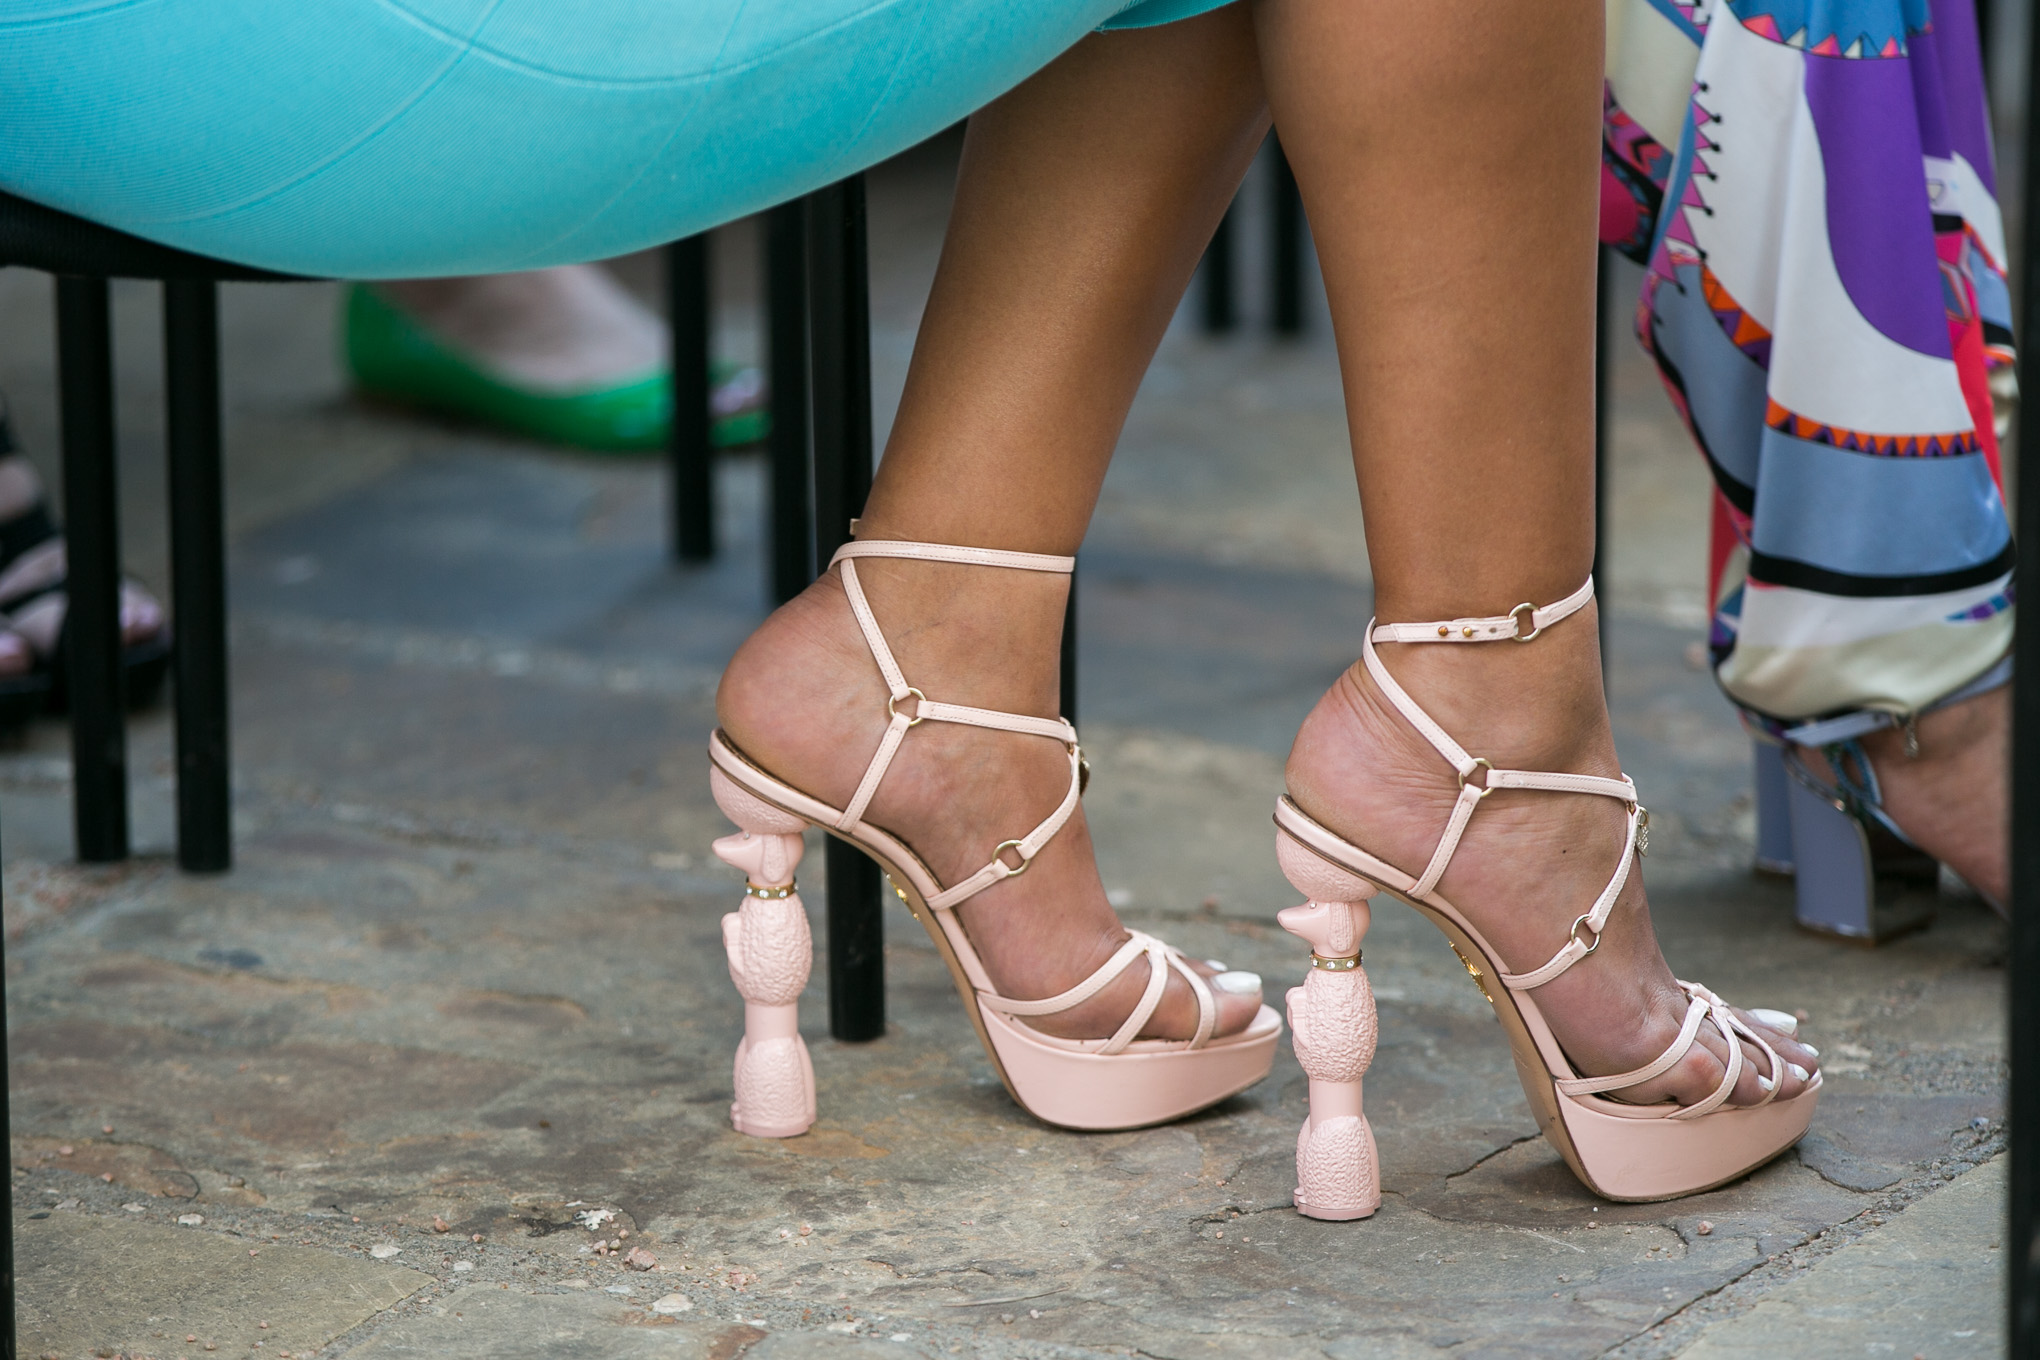 A woman's poodle styled shoes. Photo by Kathryn Boyd-Batstone